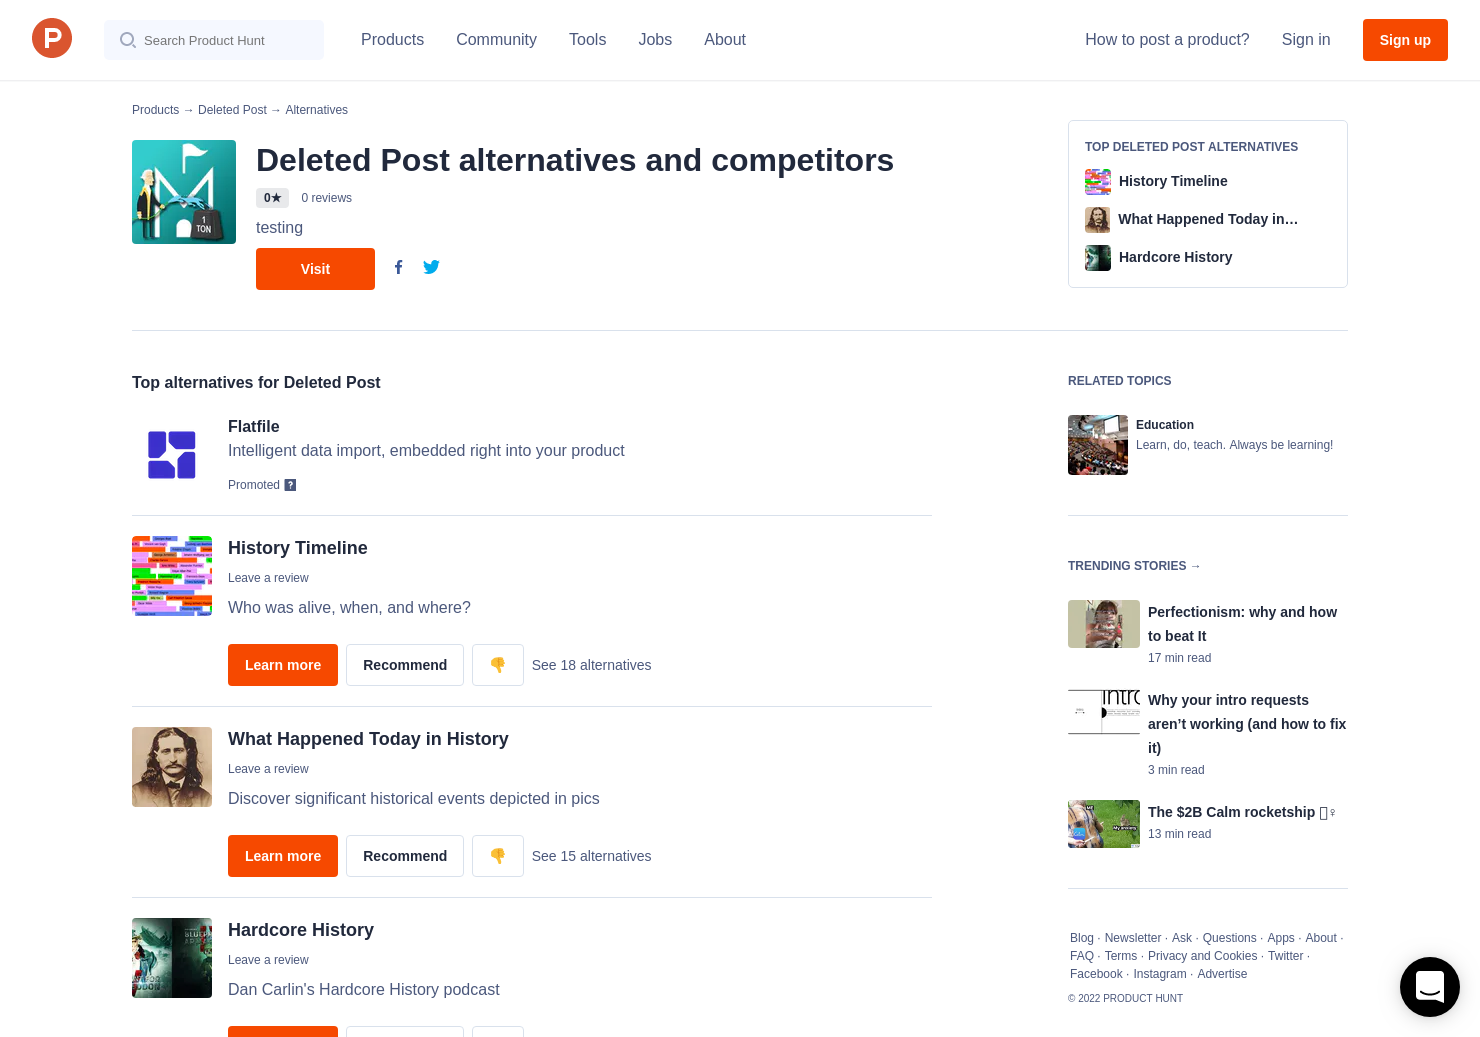 10 Alternatives to Deleted Post | Product Hunt